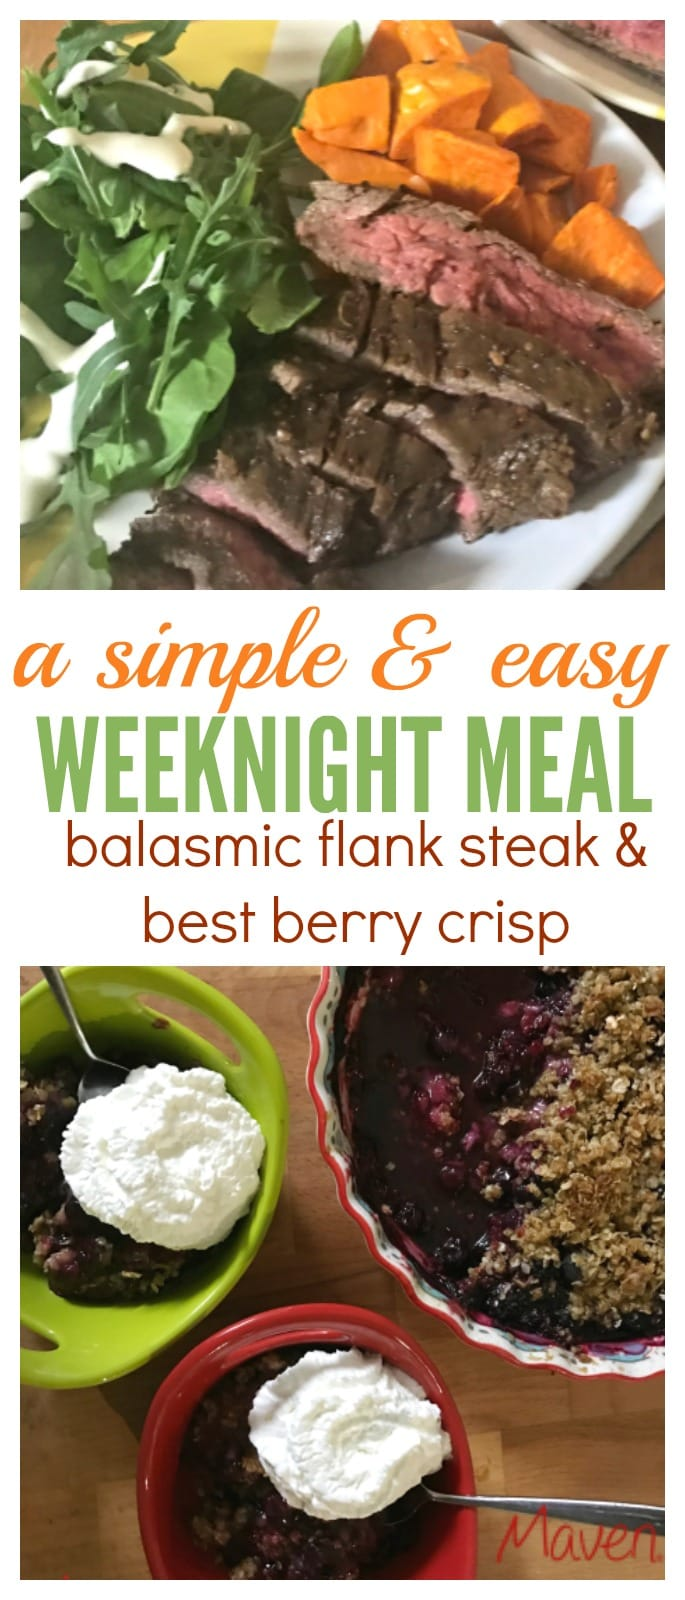 Whether its a easy weeknight meal for two, or the whole family, you'll love this balsamic marinated flank steak and best berry crisp meal!